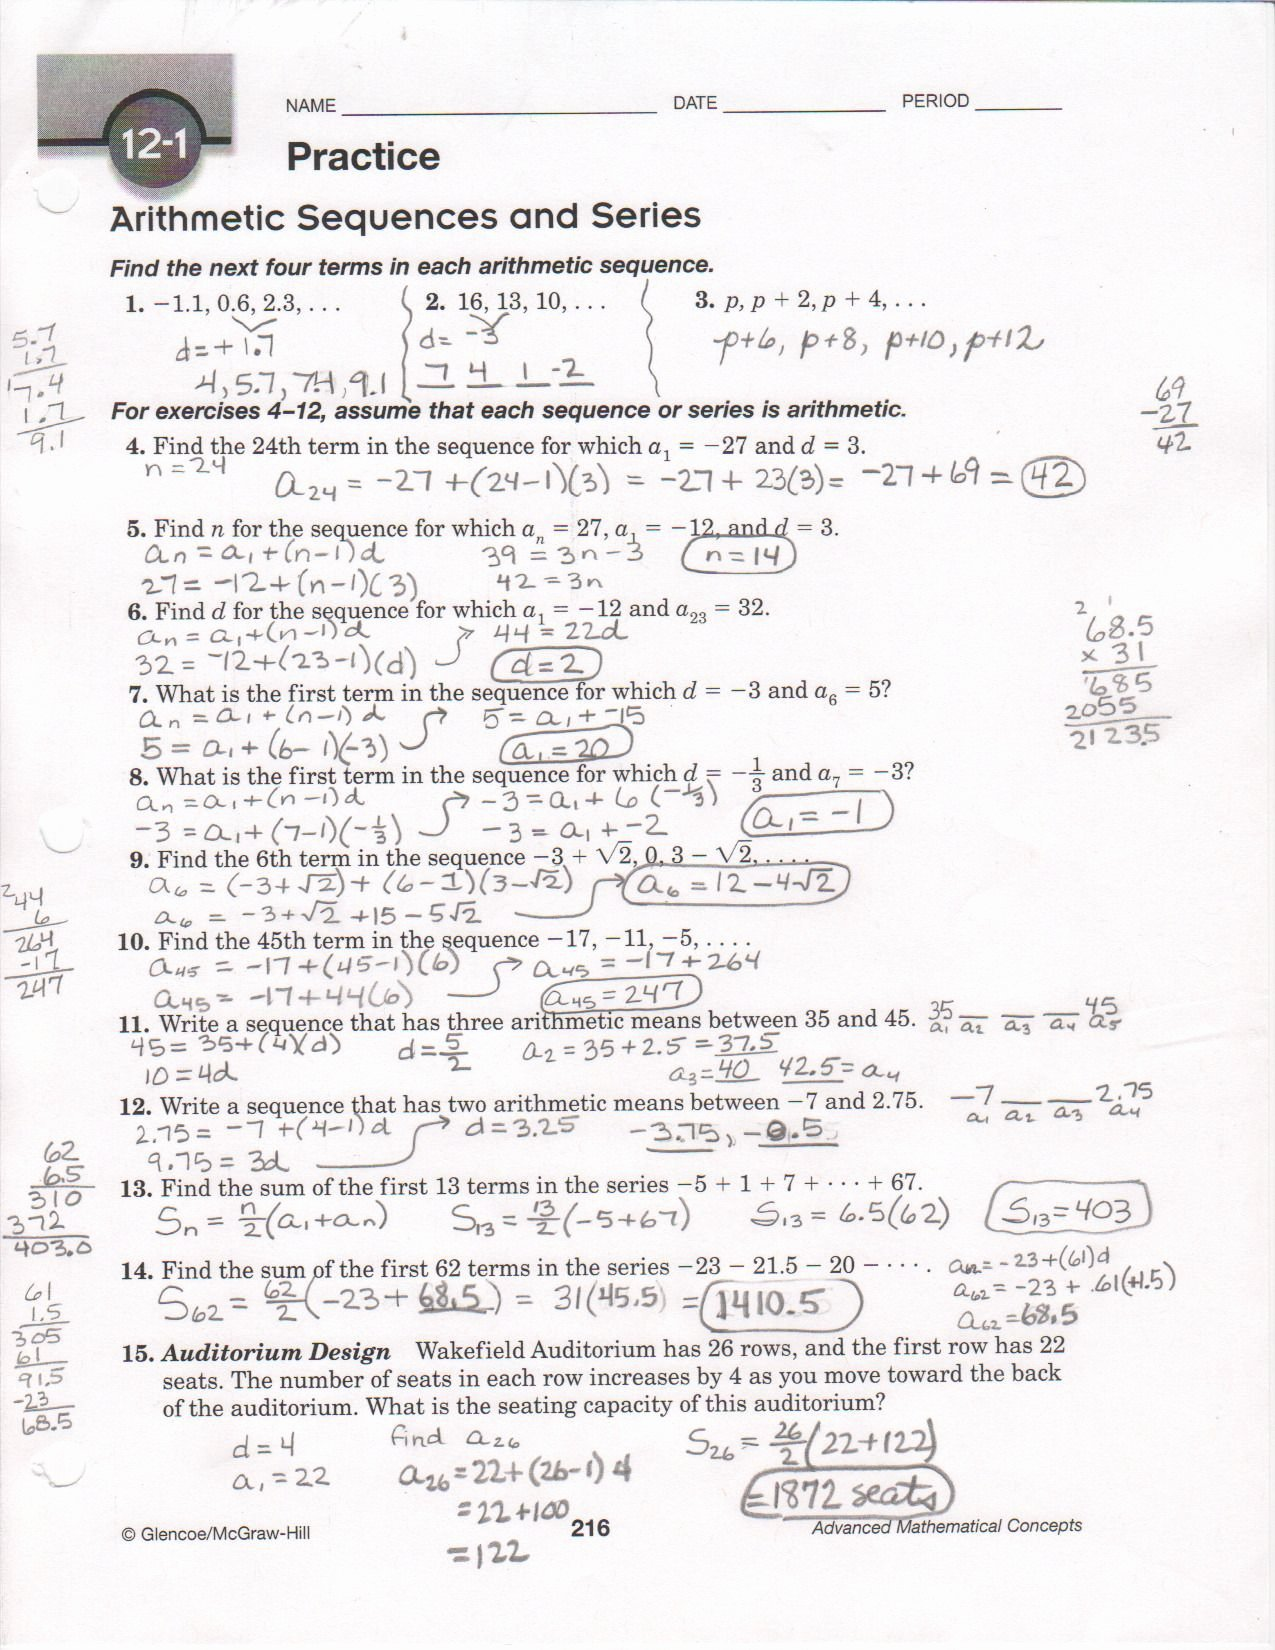 Arithmetic Sequence Worksheet Answers Beautiful Arithmetic Sequences Worksheet 1 Answer Key